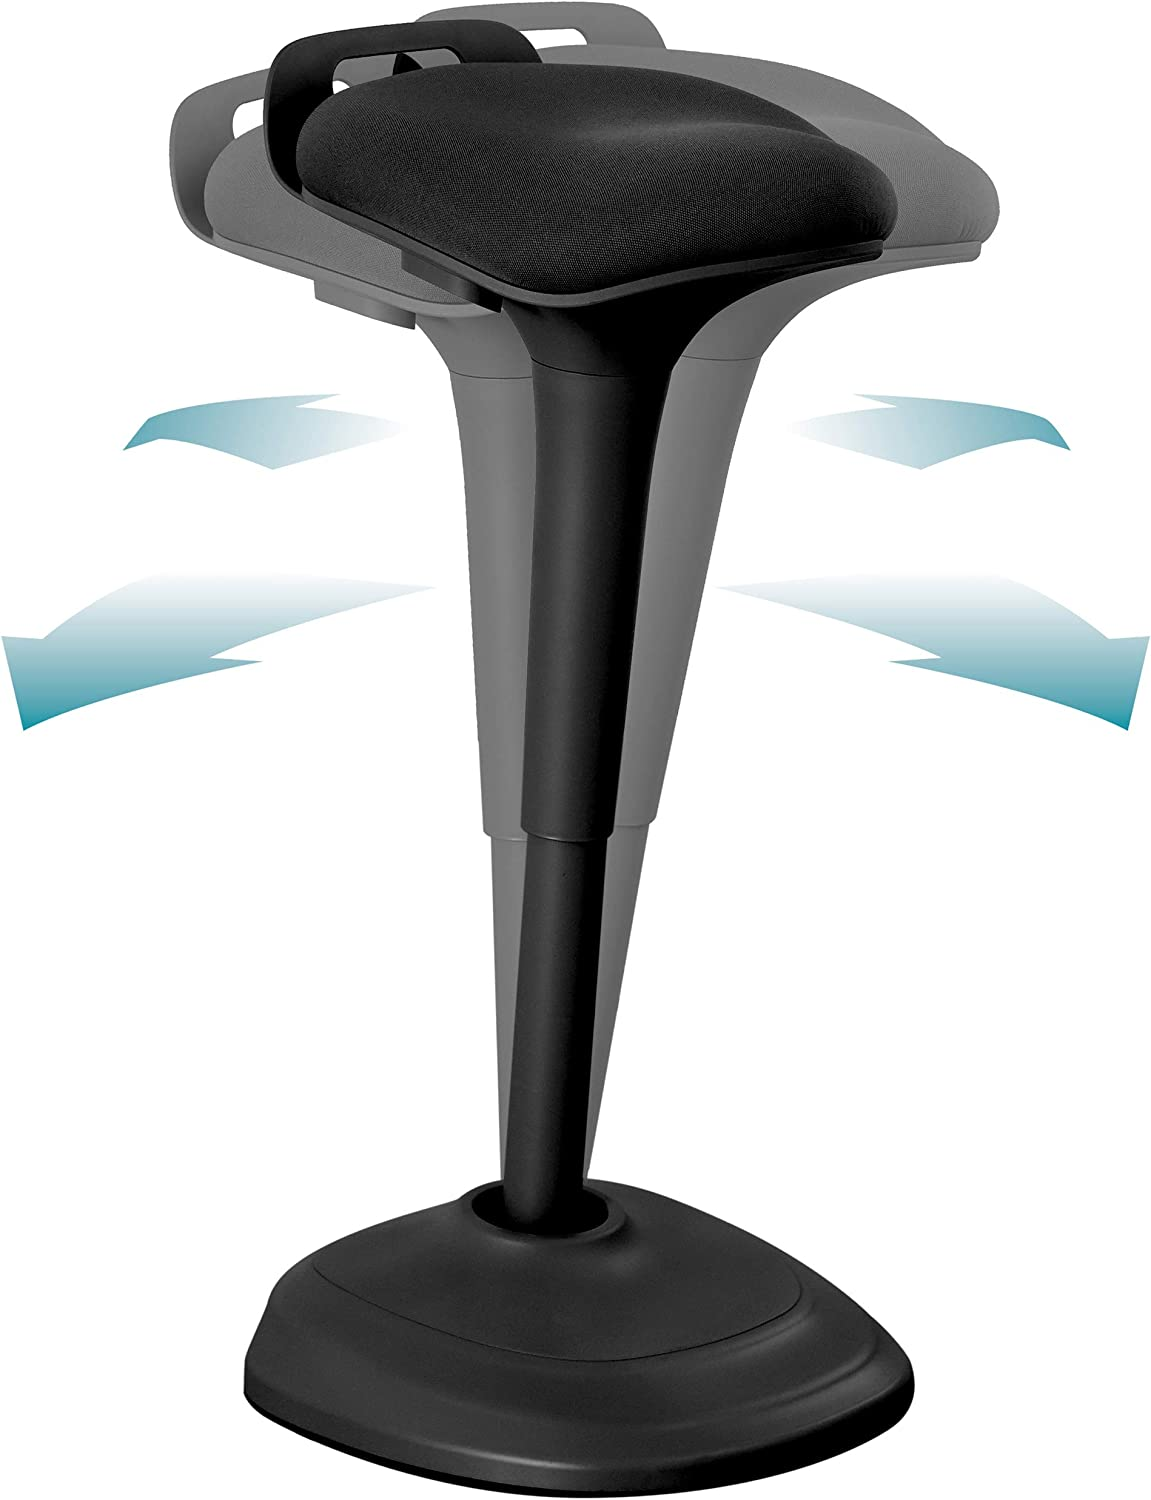 Wobble Stool Chair Standing Desk Chair 27.56 to 37.79 Inches, Adjustable Standing Stool, Sitting Balance Chair, Comfortable and Breathable Seat - (Black) B07RM2N9L4